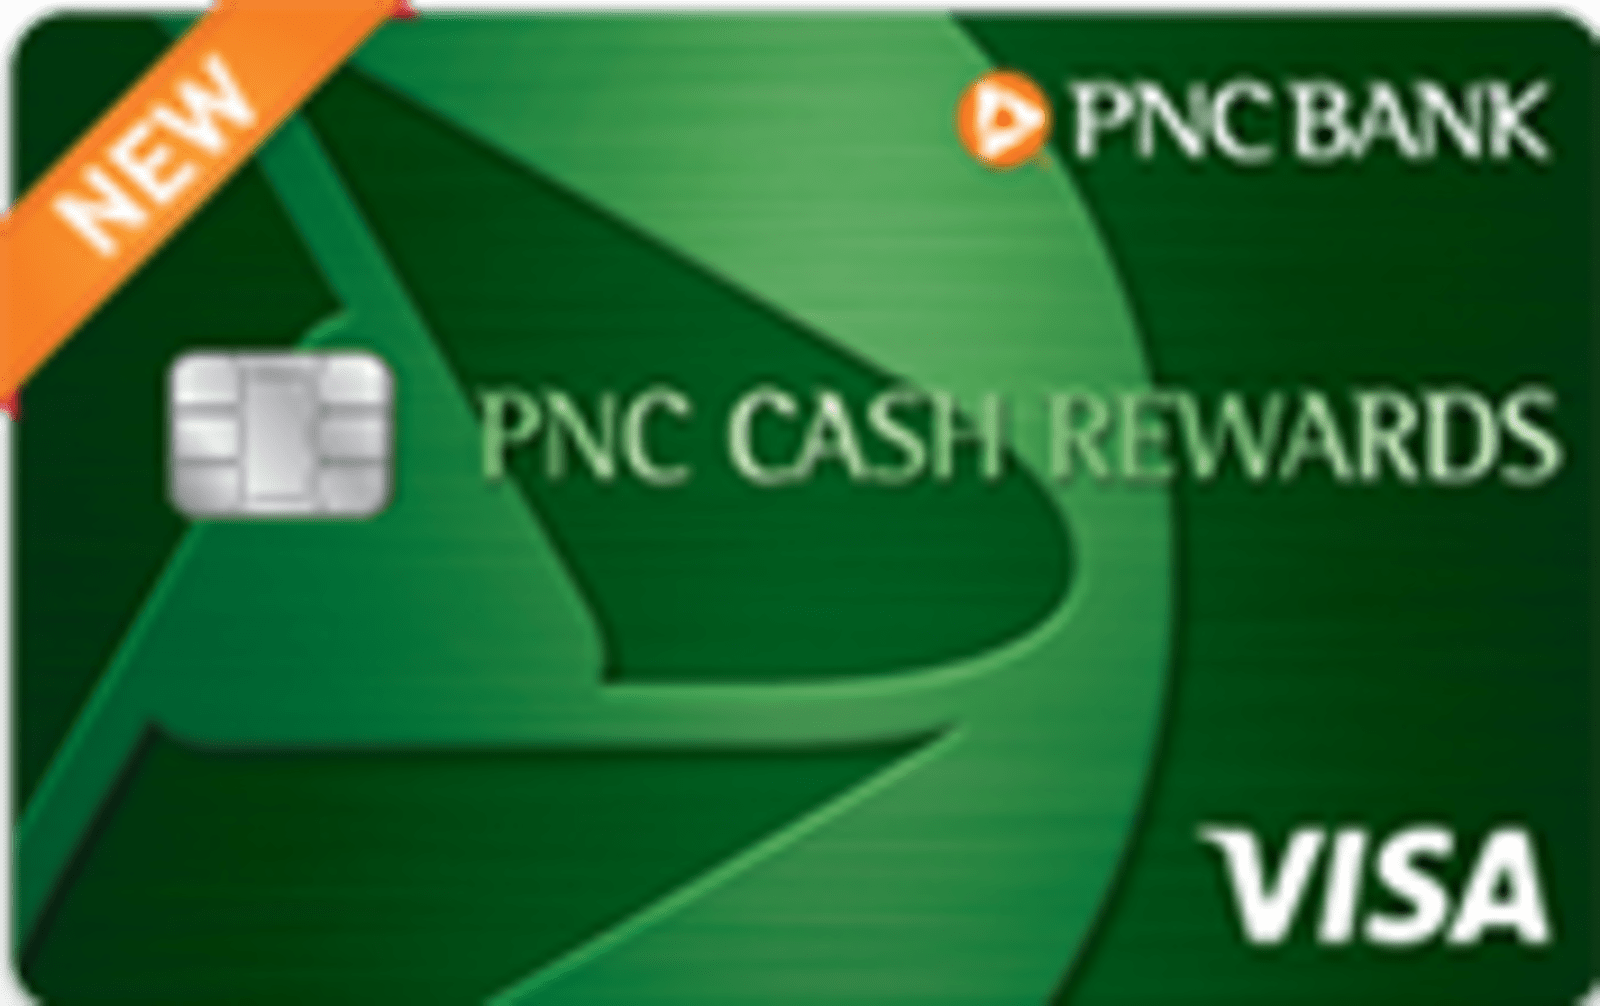 Pnc Cash Rewards Visa Is It Any Good Credit Card Review